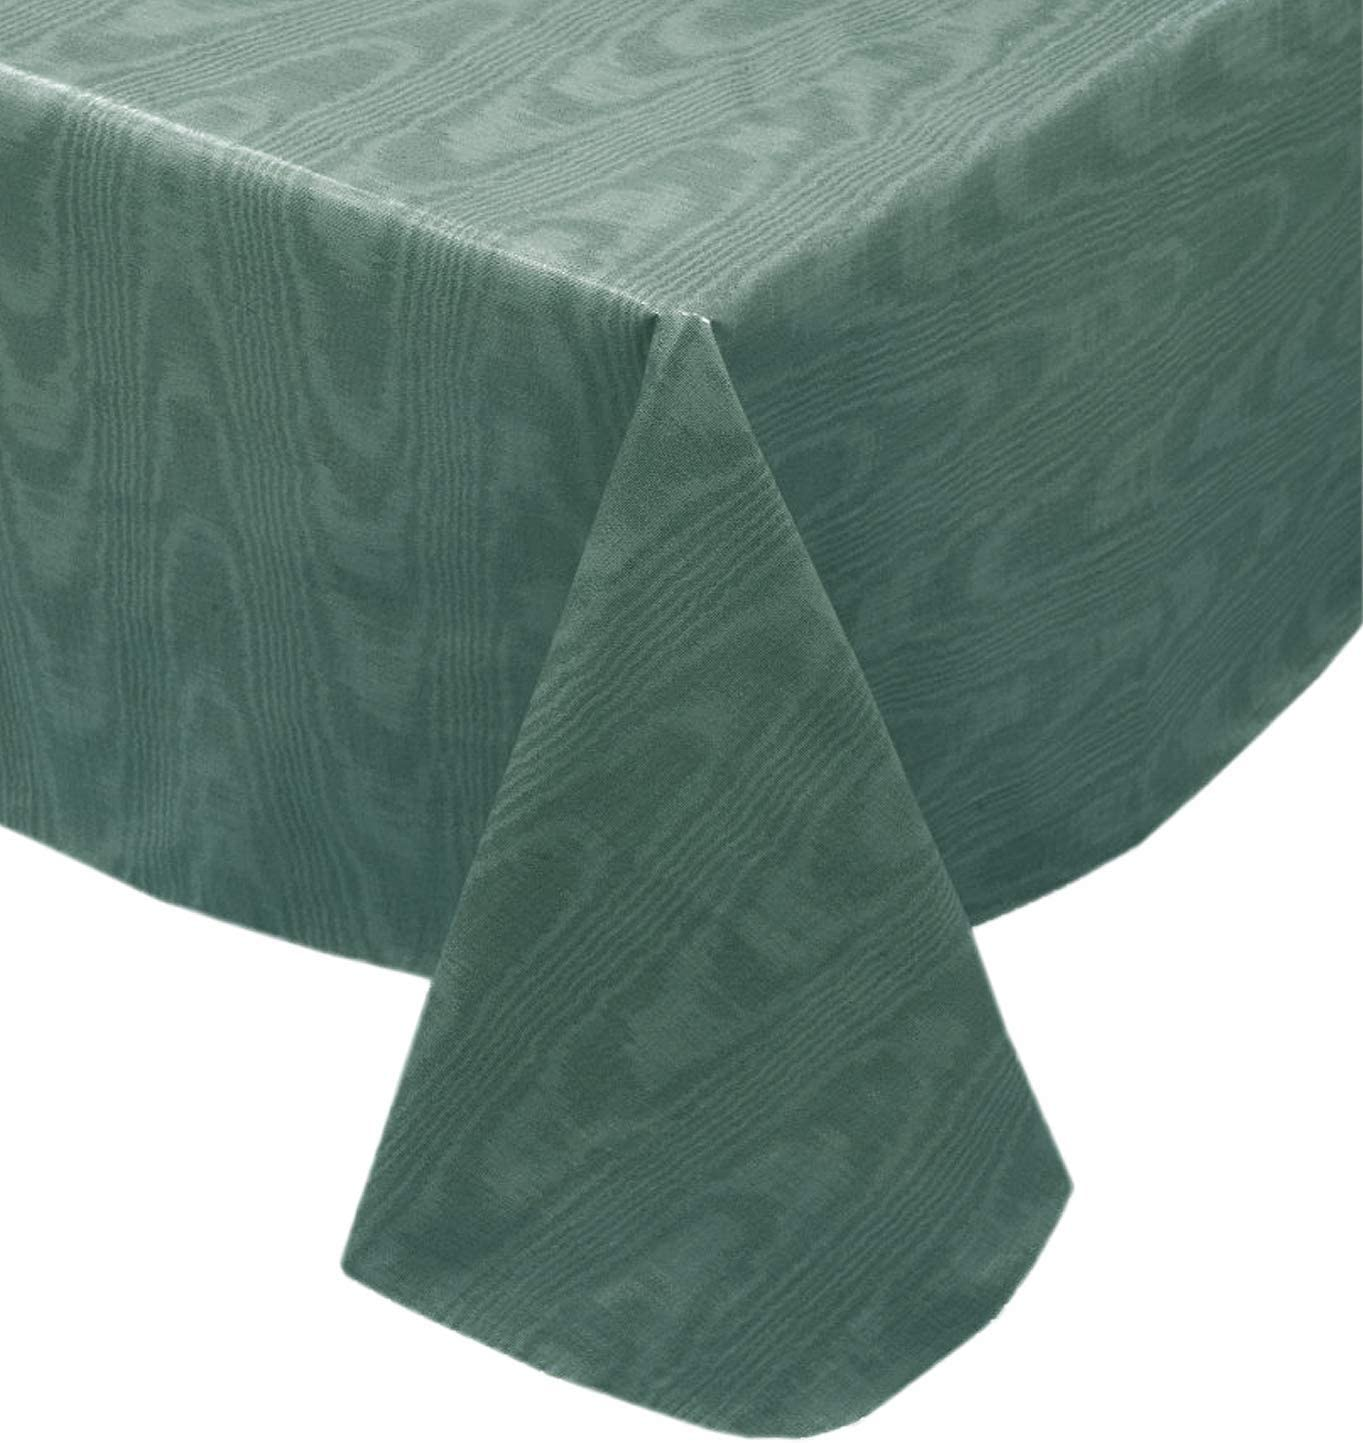 Newbridge Hunter Green Moire Wavy Solid Color Print Heavy Gauge Vinyl Flannel Backed Tablecloth, Hotel Quality Heavyweight Wipe Clean Tablecloth, (52 Inch x 70 Inch Oblong/Rectangle)